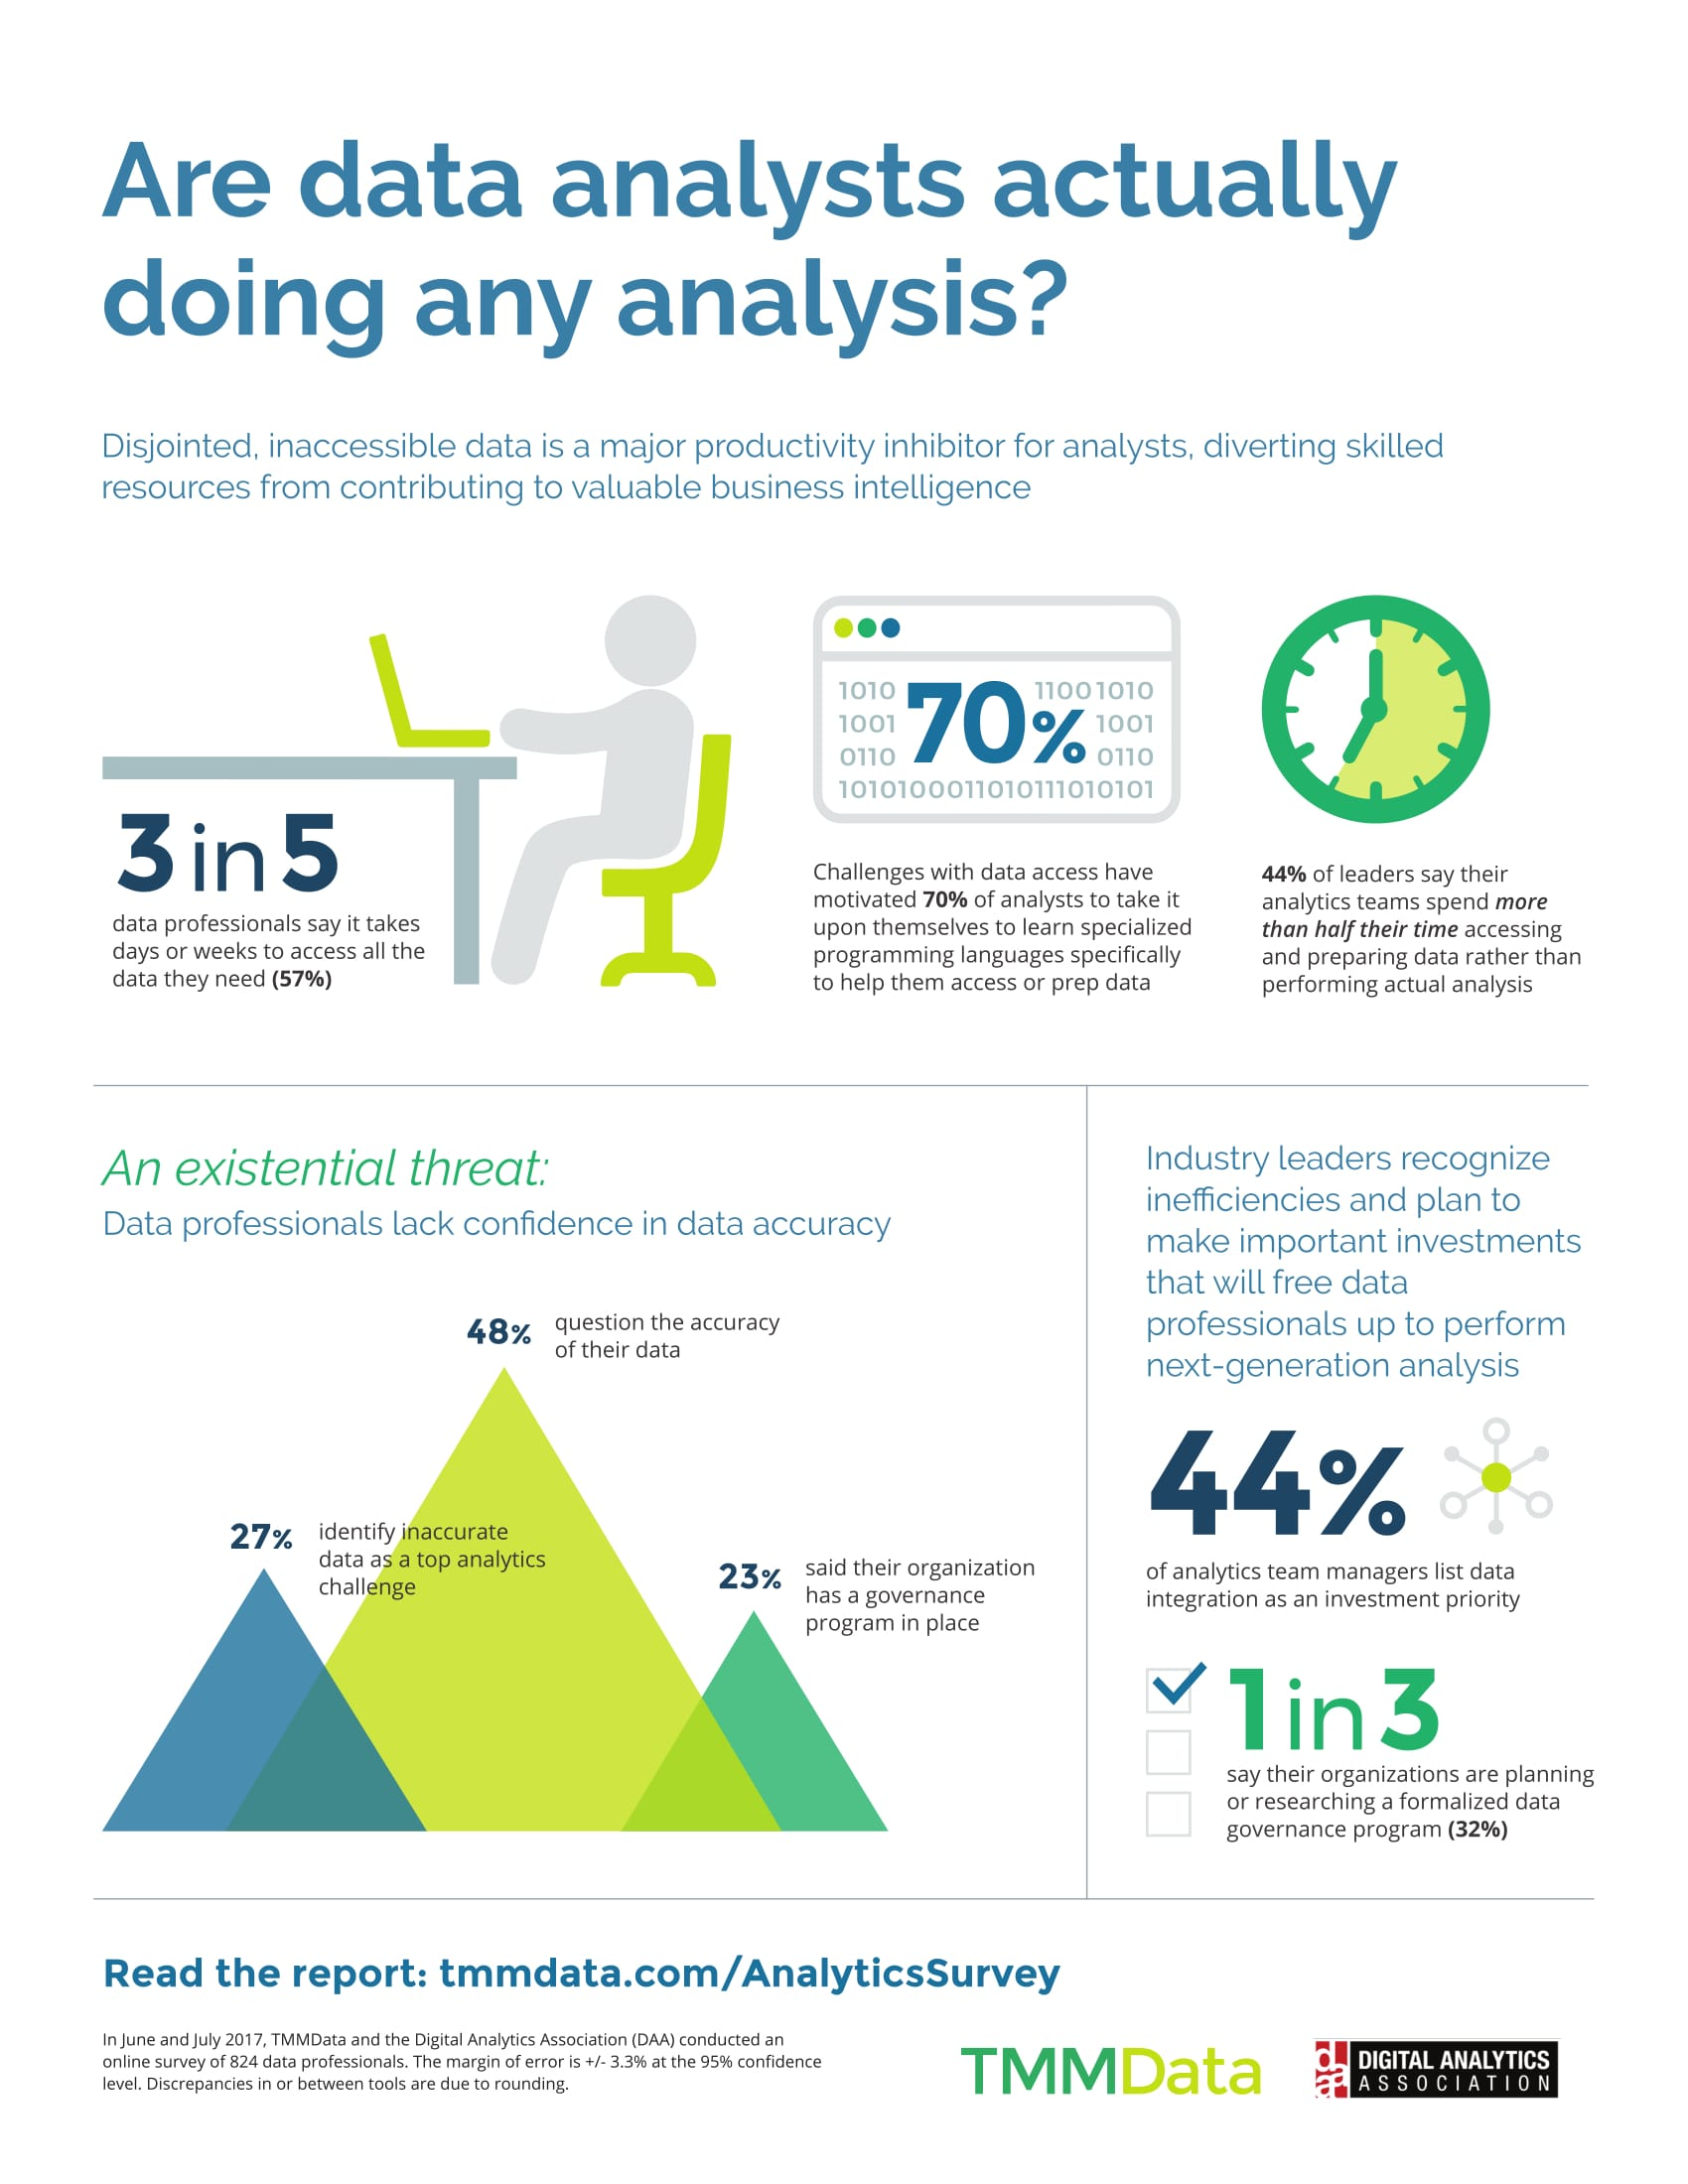 Data analysts survey 2017 infographic